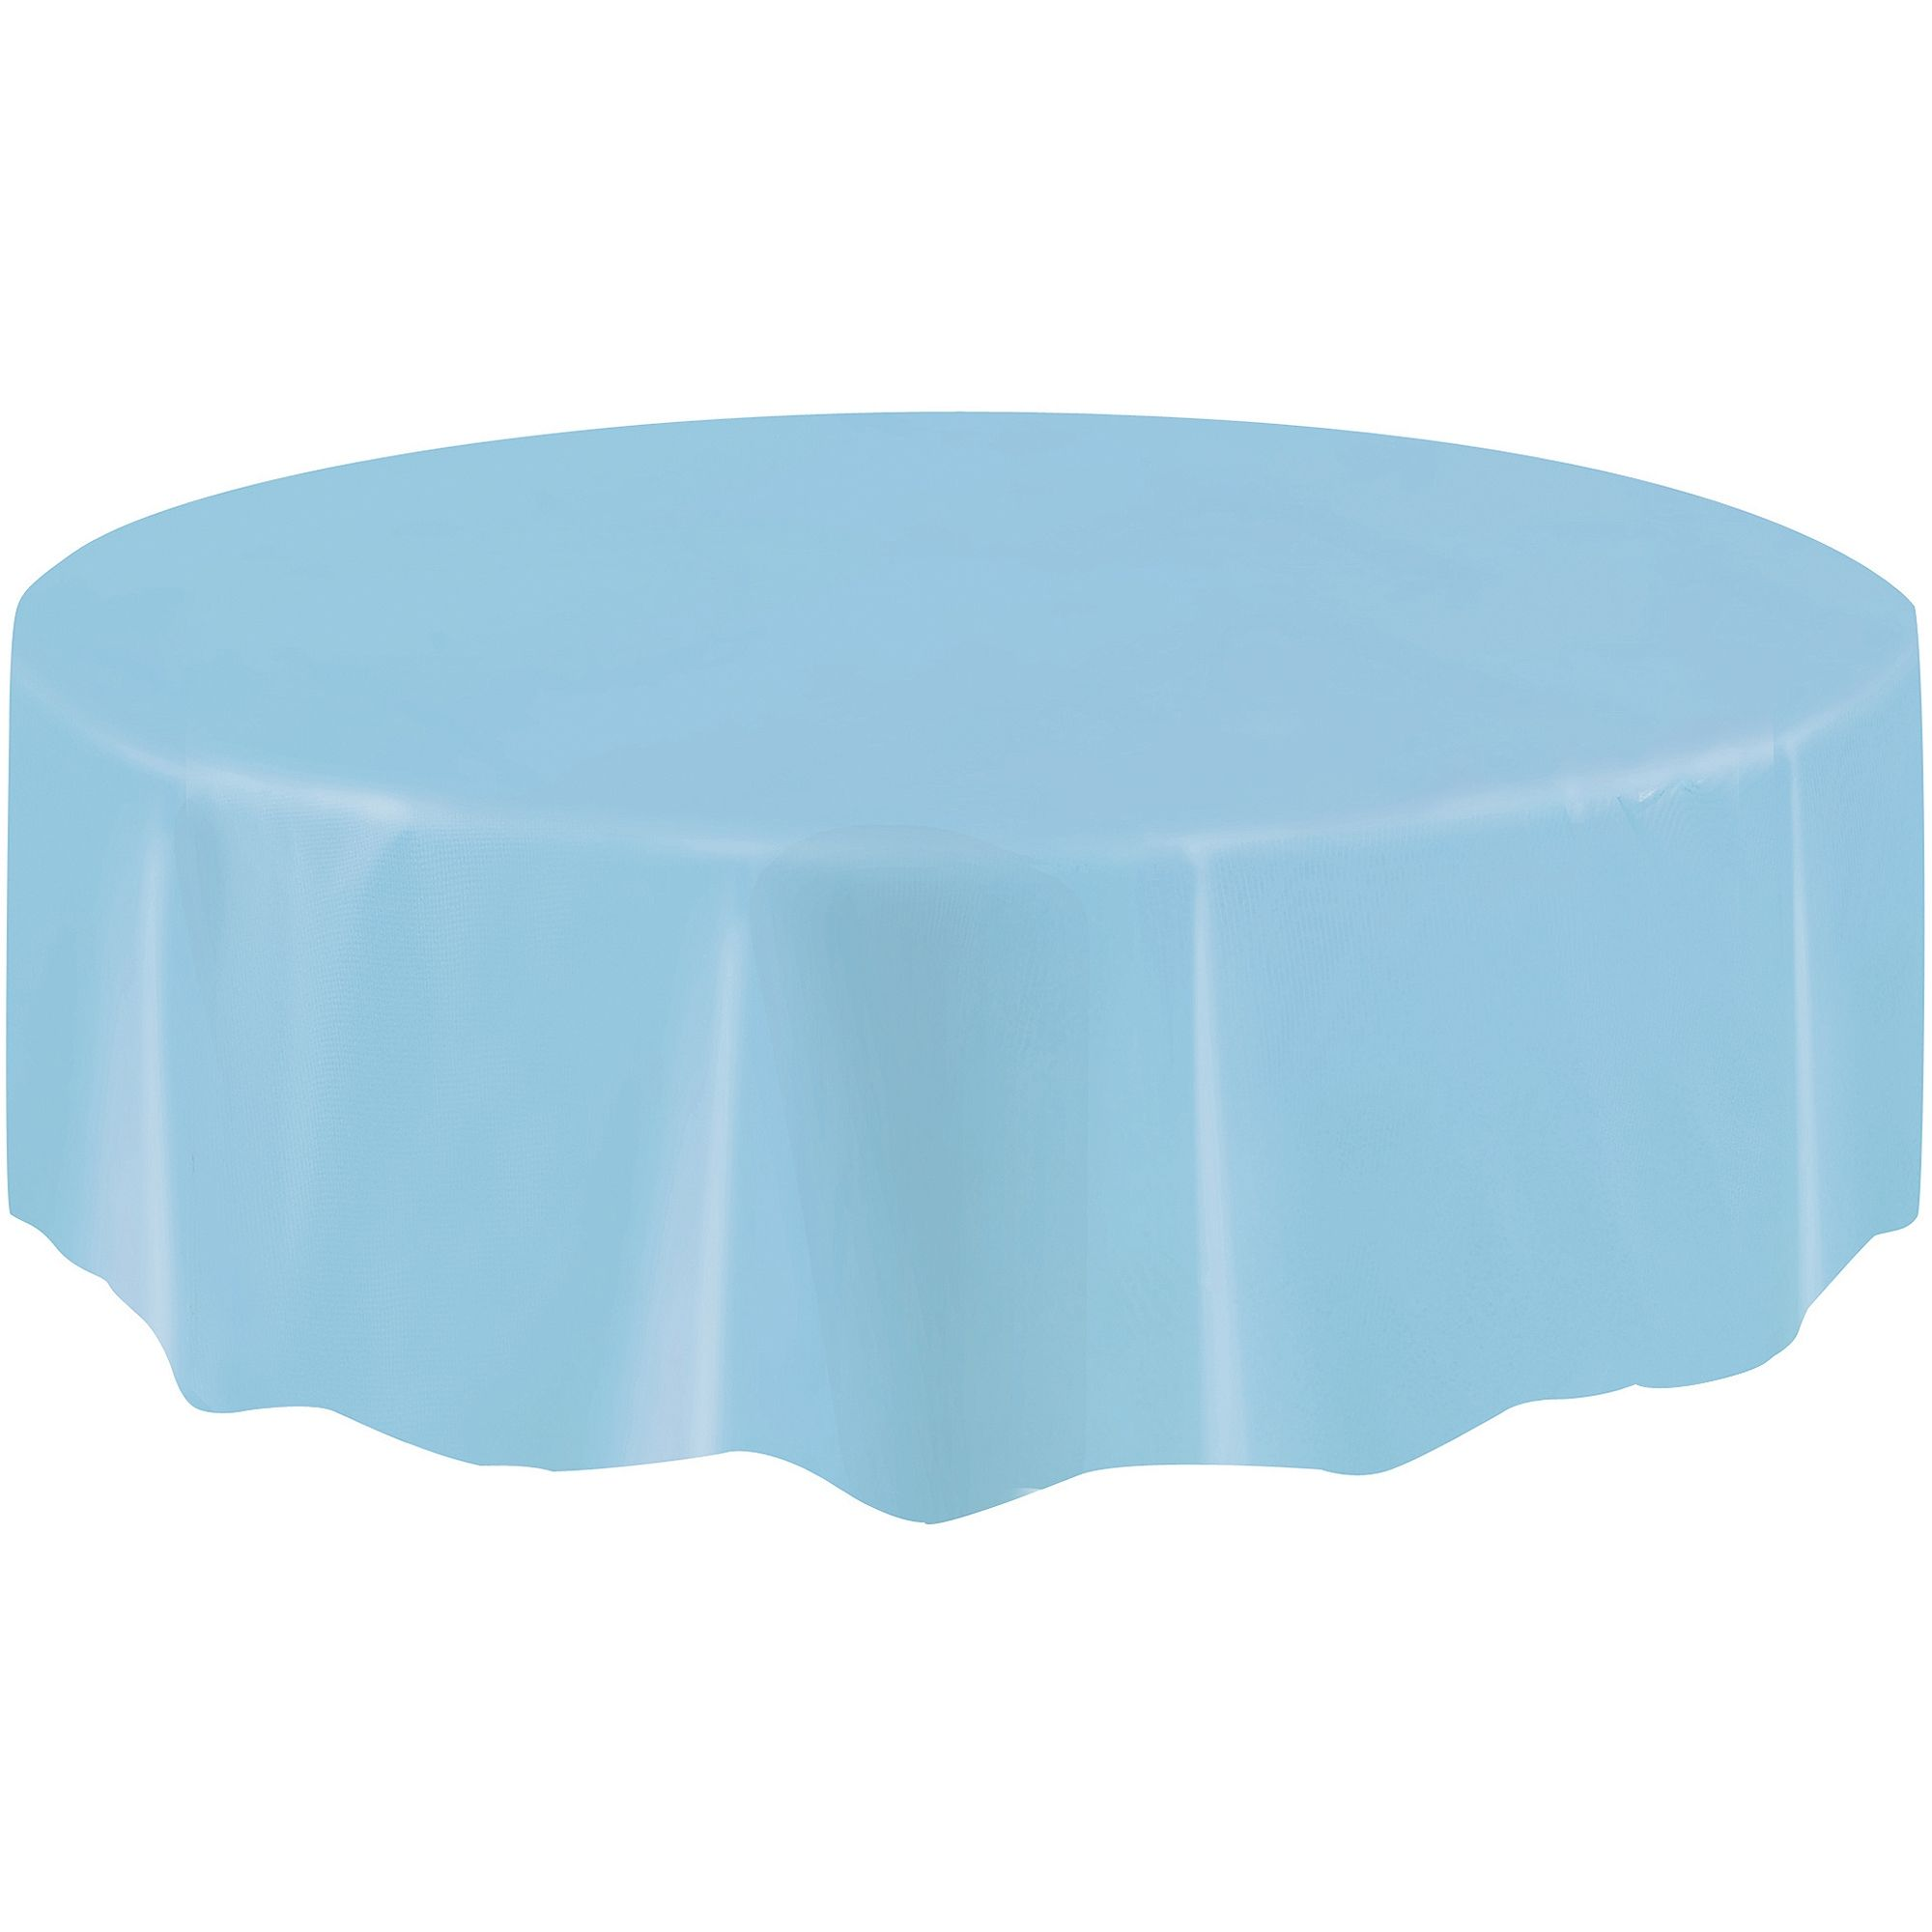 Plastic Tablecloths For Round Tables